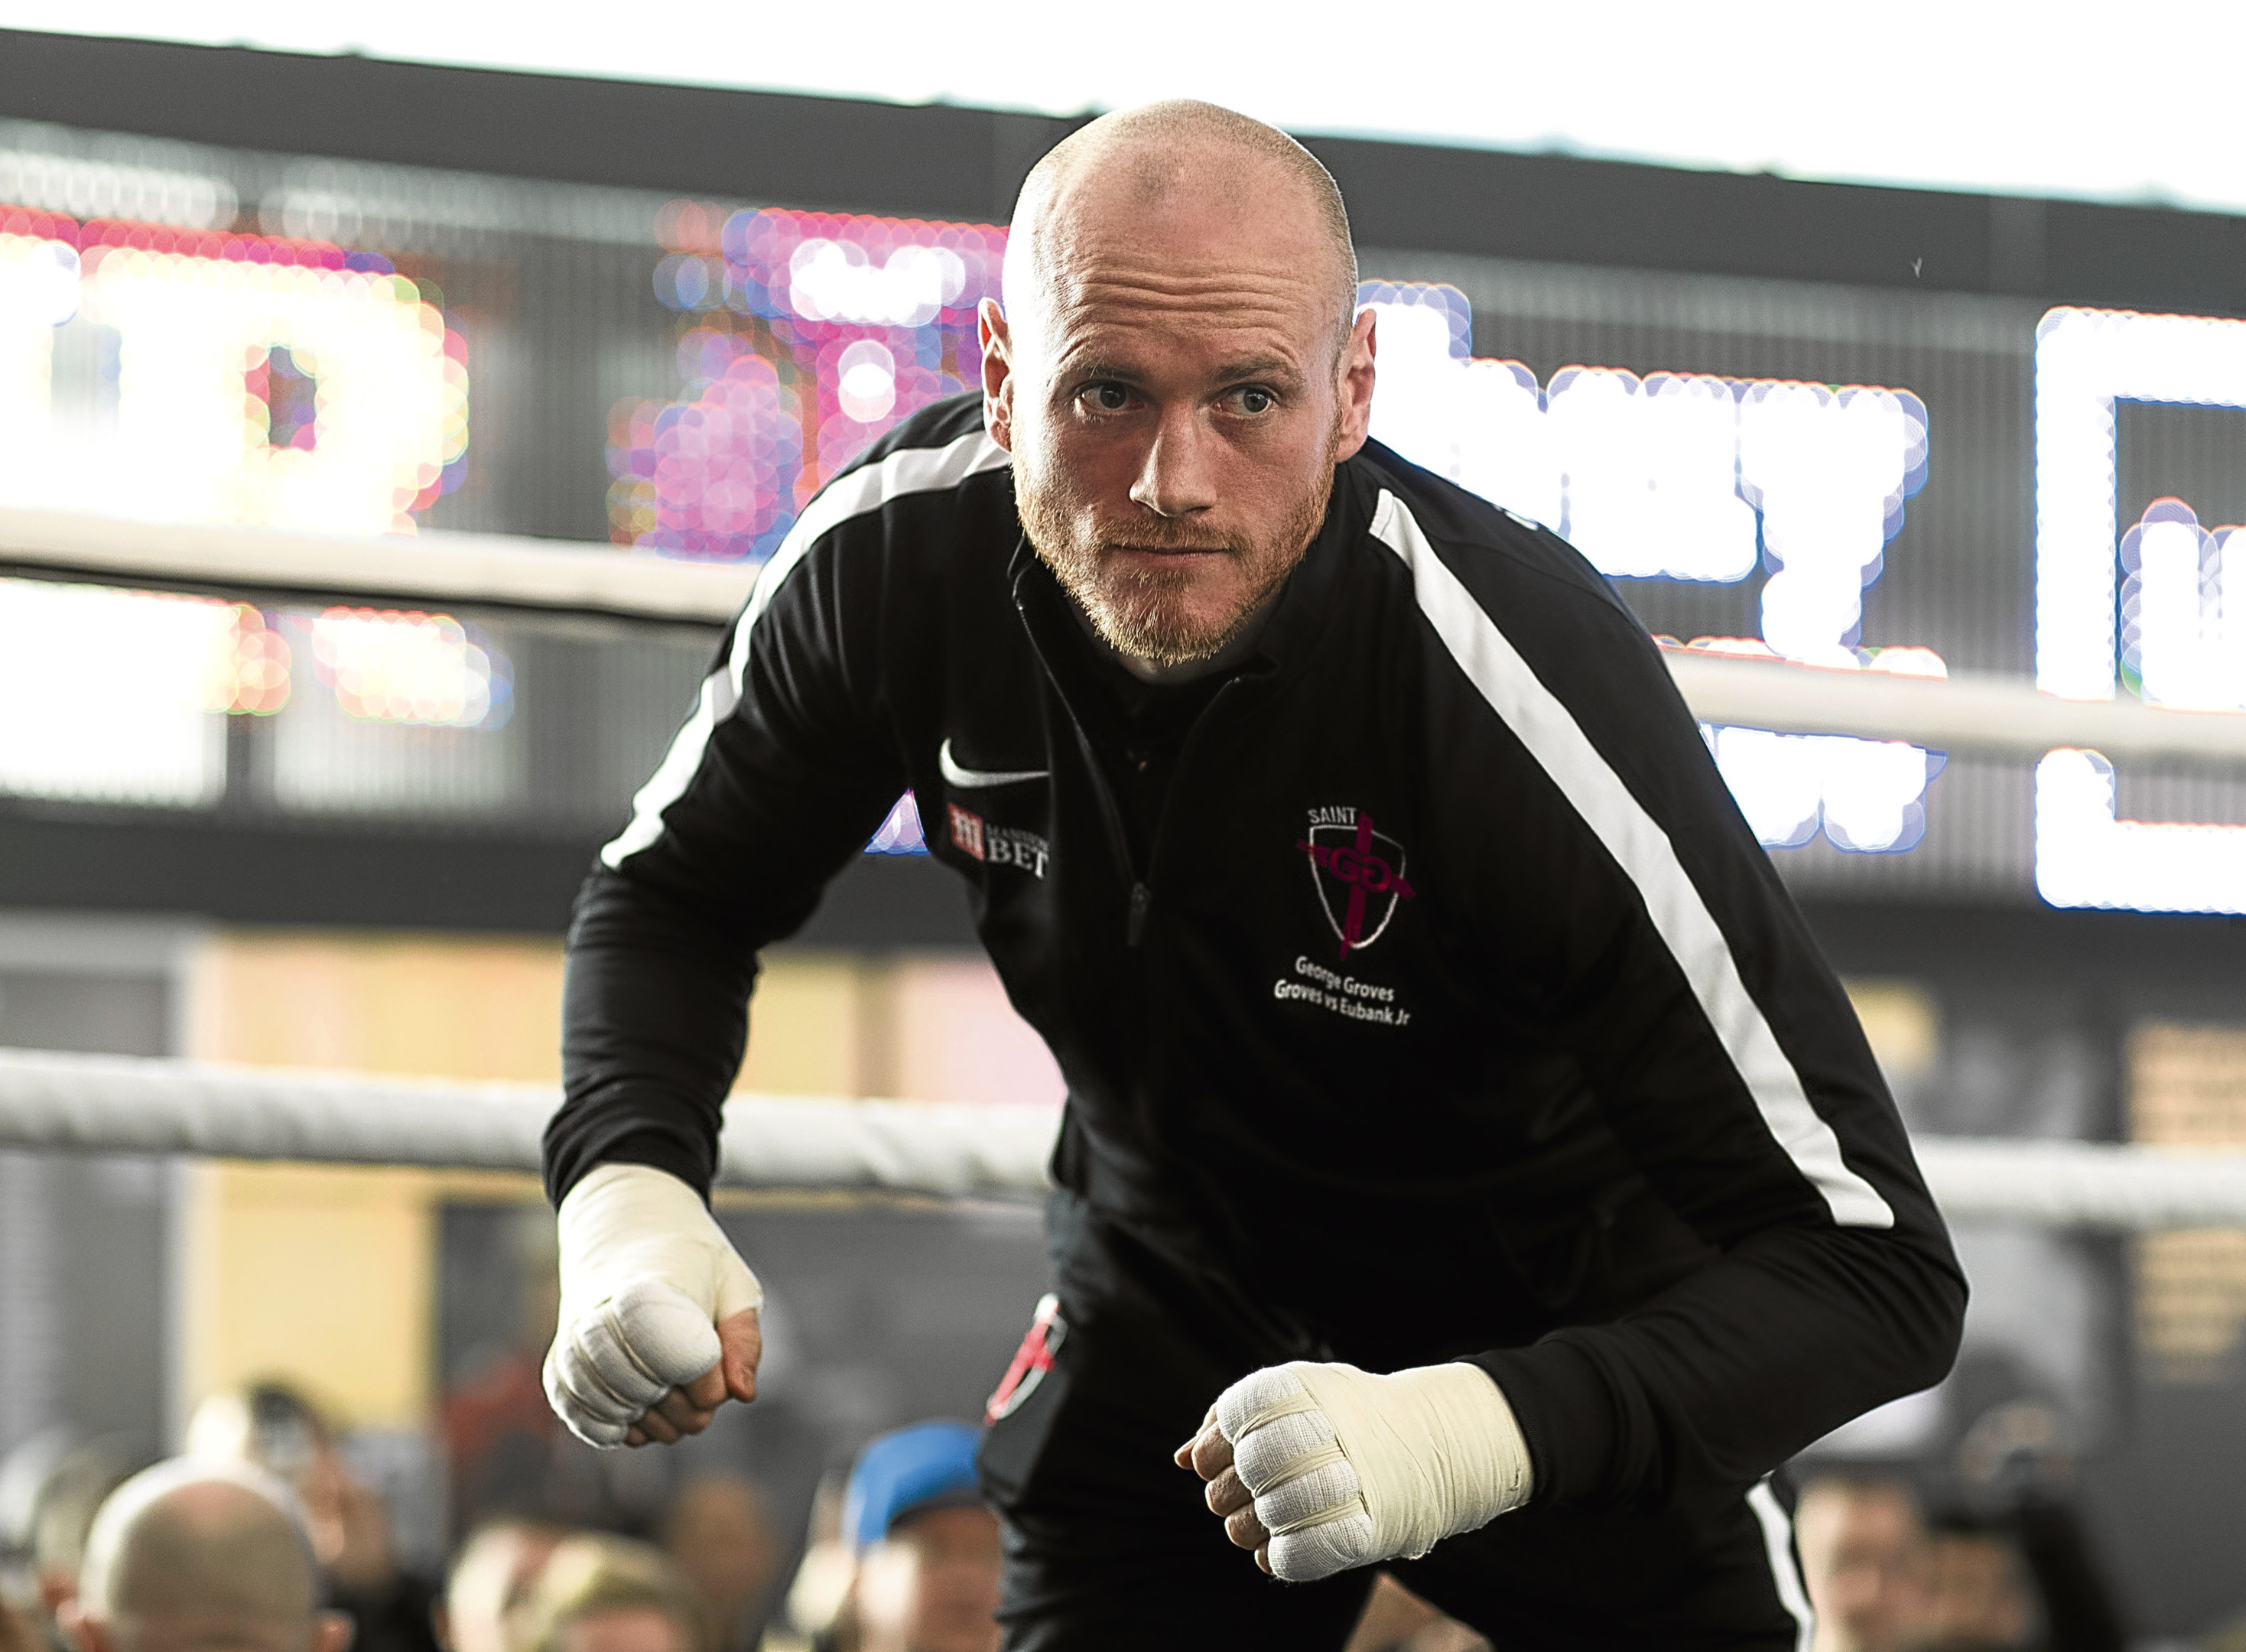 MANCHESTER, ENGLAND - FEBRUARY 13: George Groves takes part in a public work out at National Football Museum on February 13, 2018 in Manchester, England. (Photo by Mark Robinson/Getty Images)